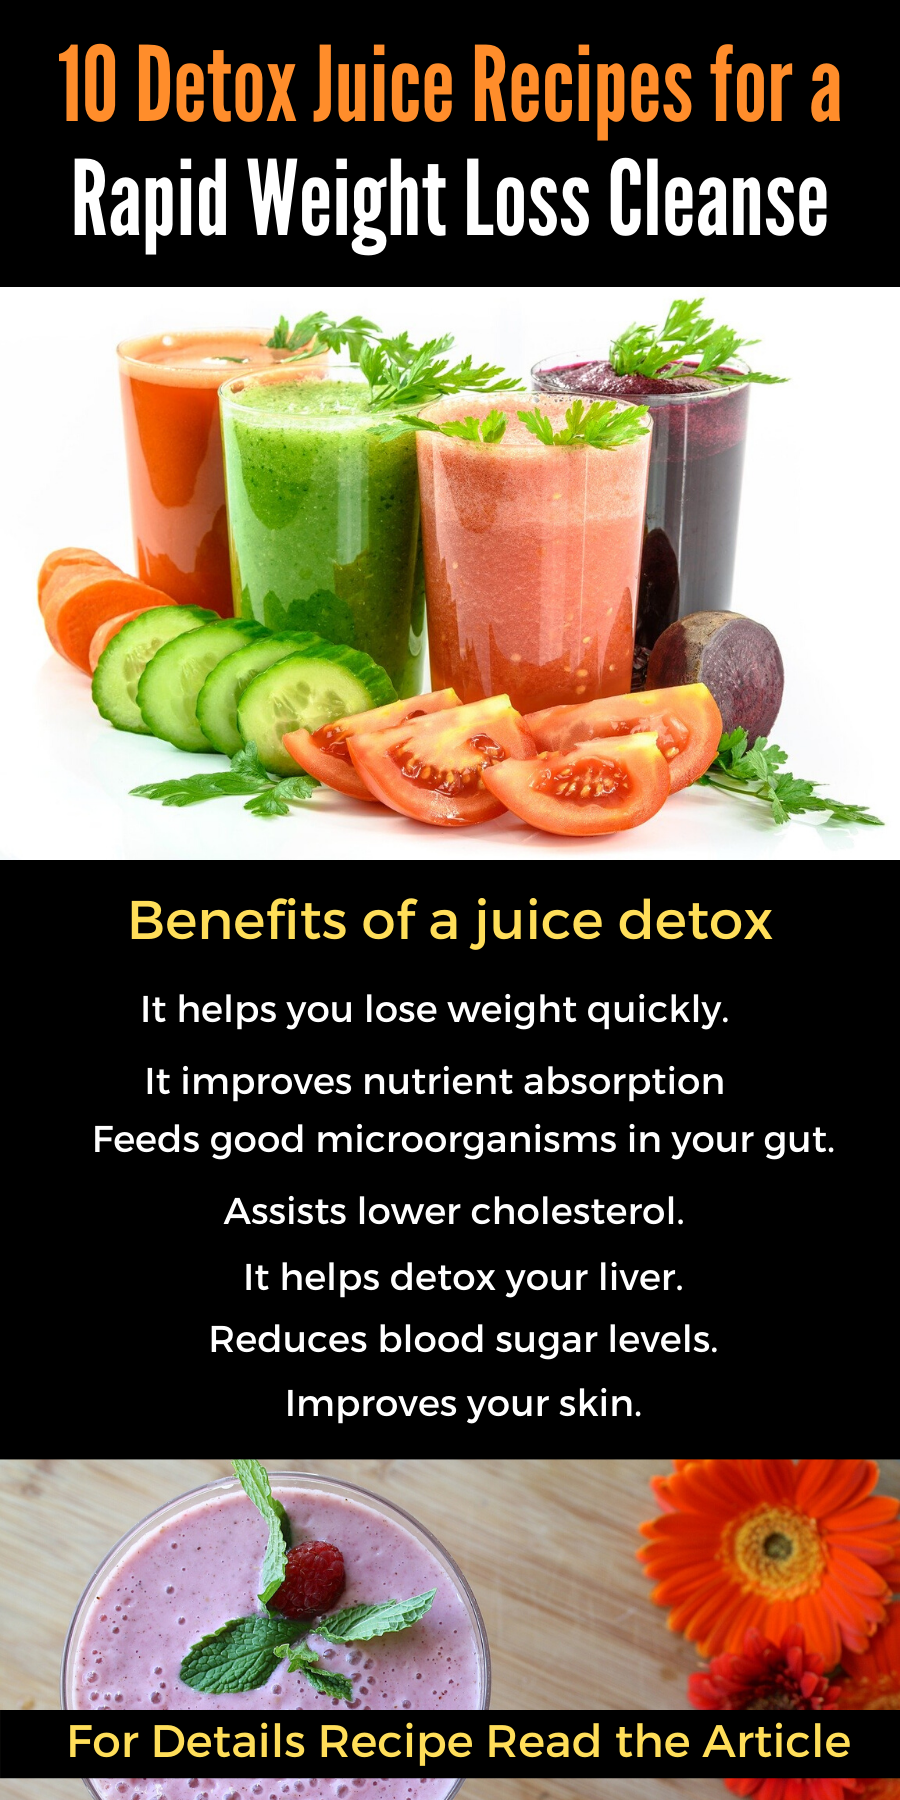 10 Detox Juice Recipes for a Rapid Weight Loss Cleanse